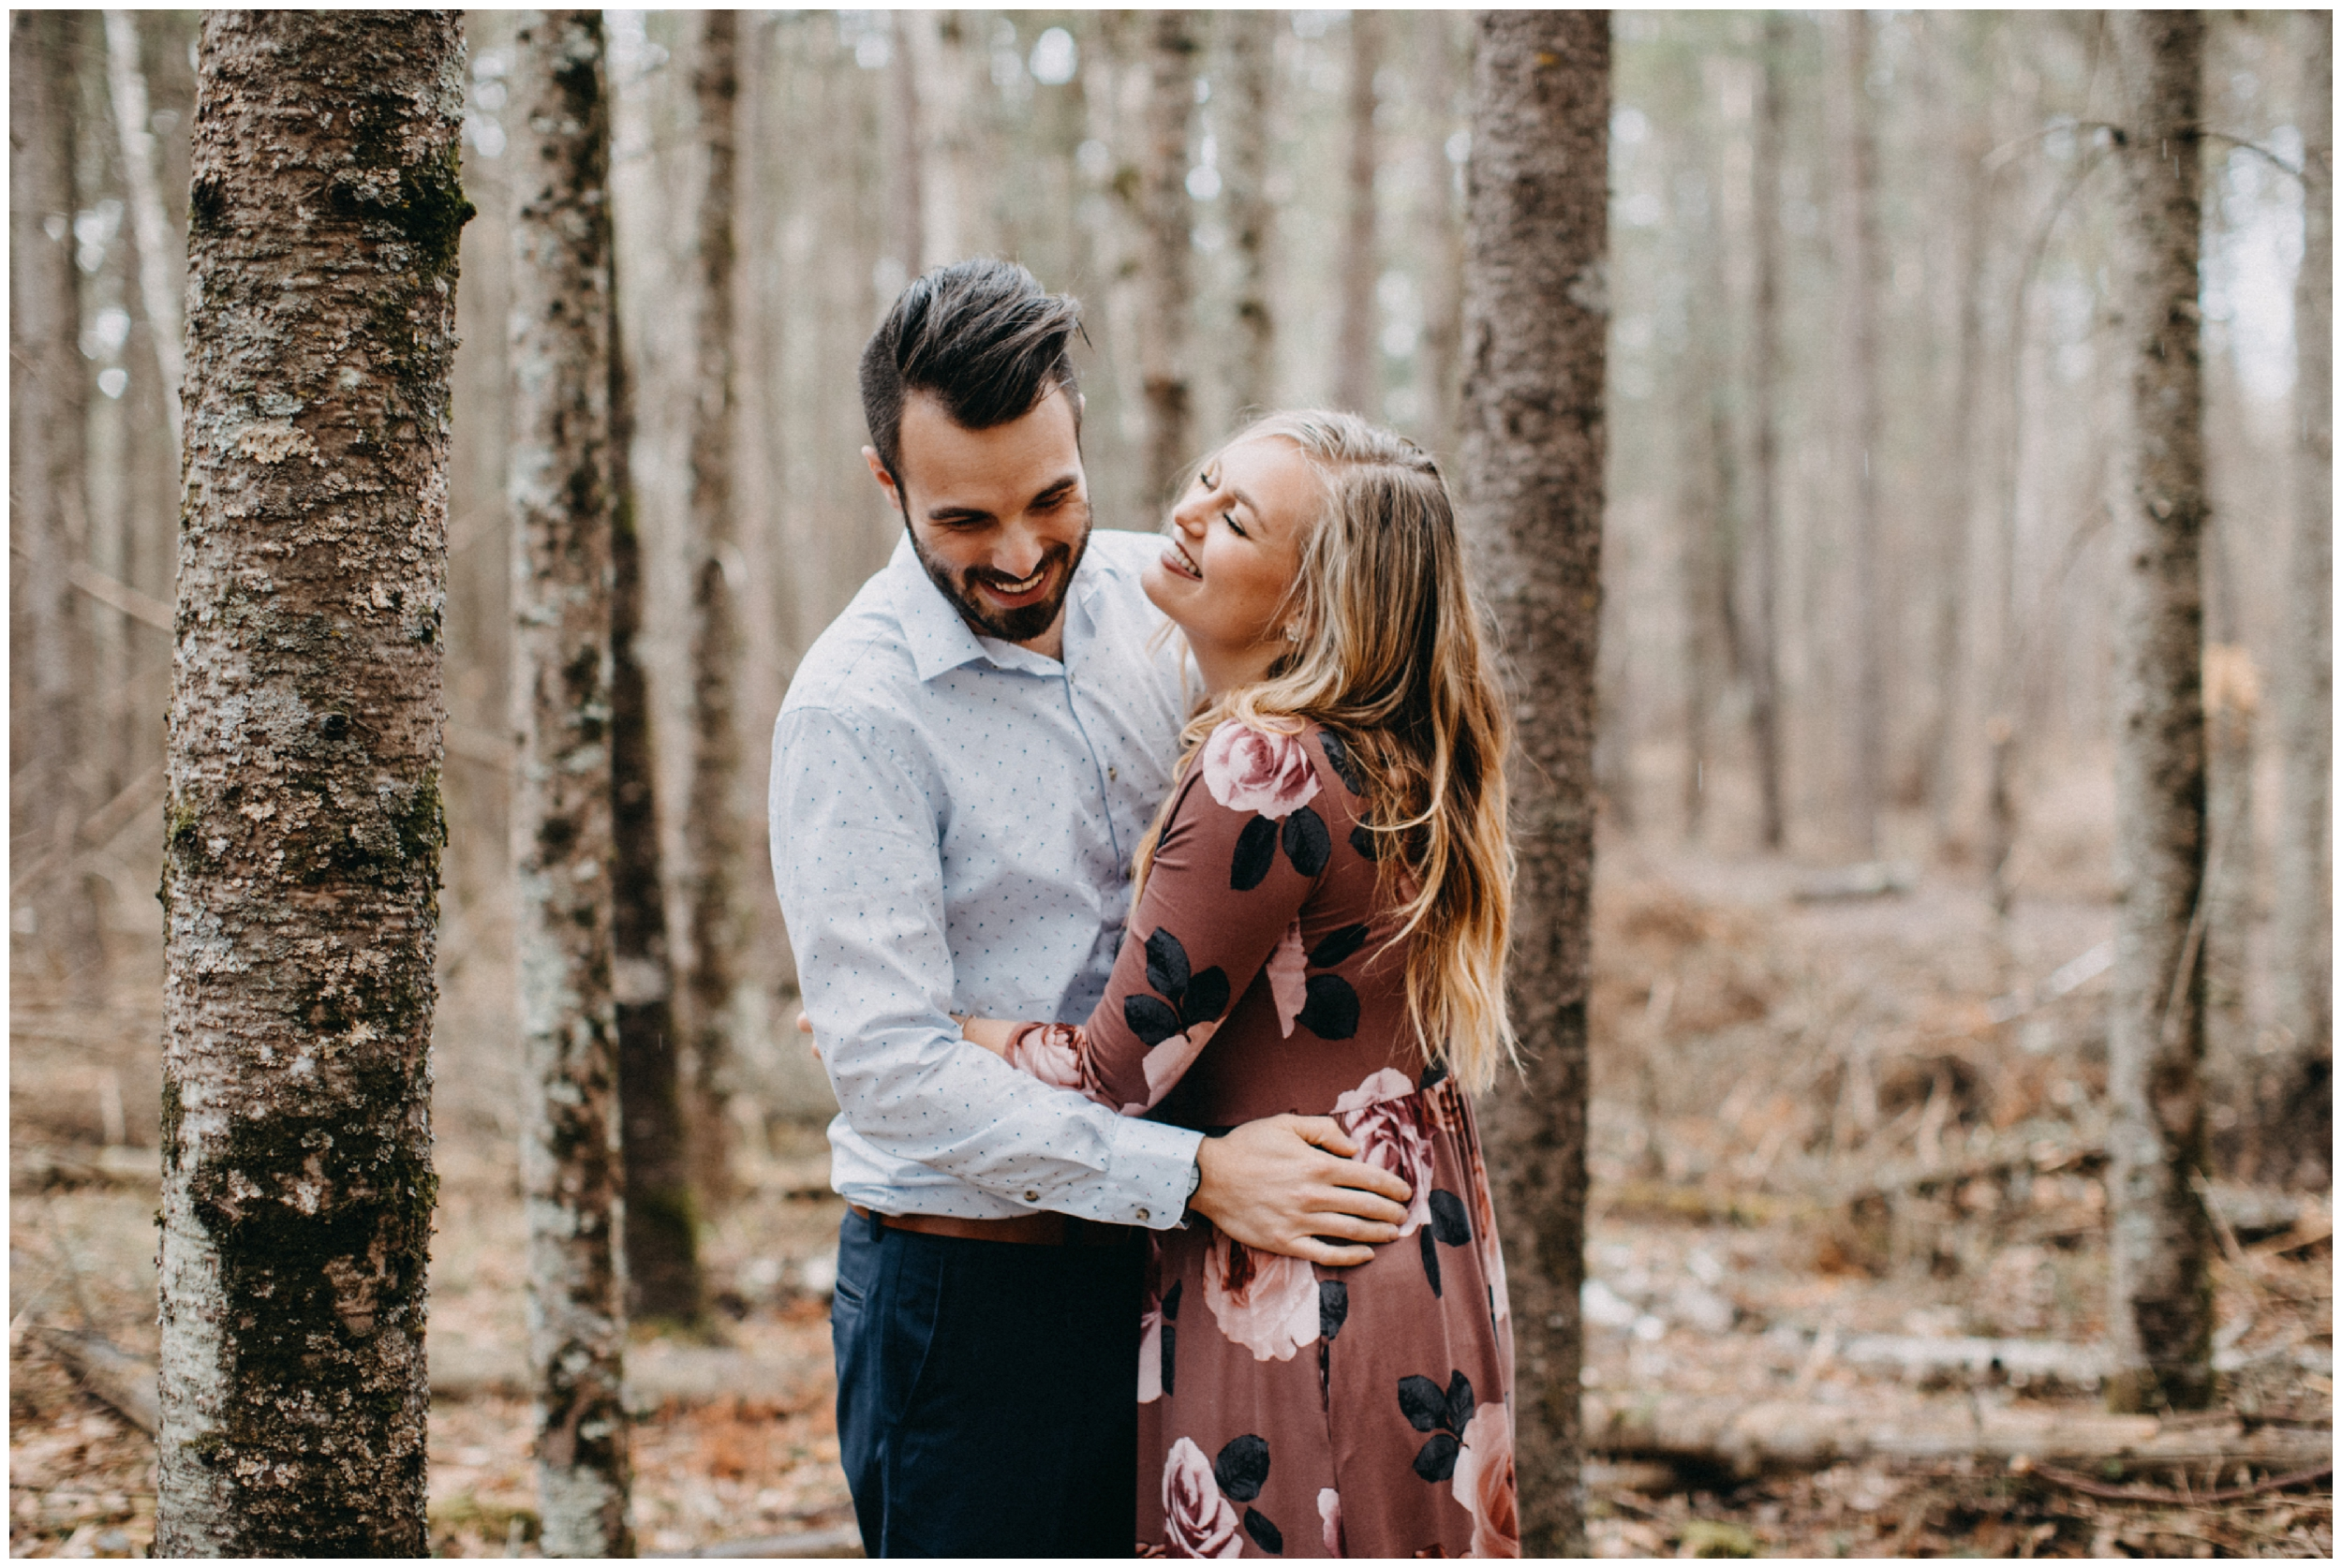 Unposed engagement photography in Brainerd Minnesota